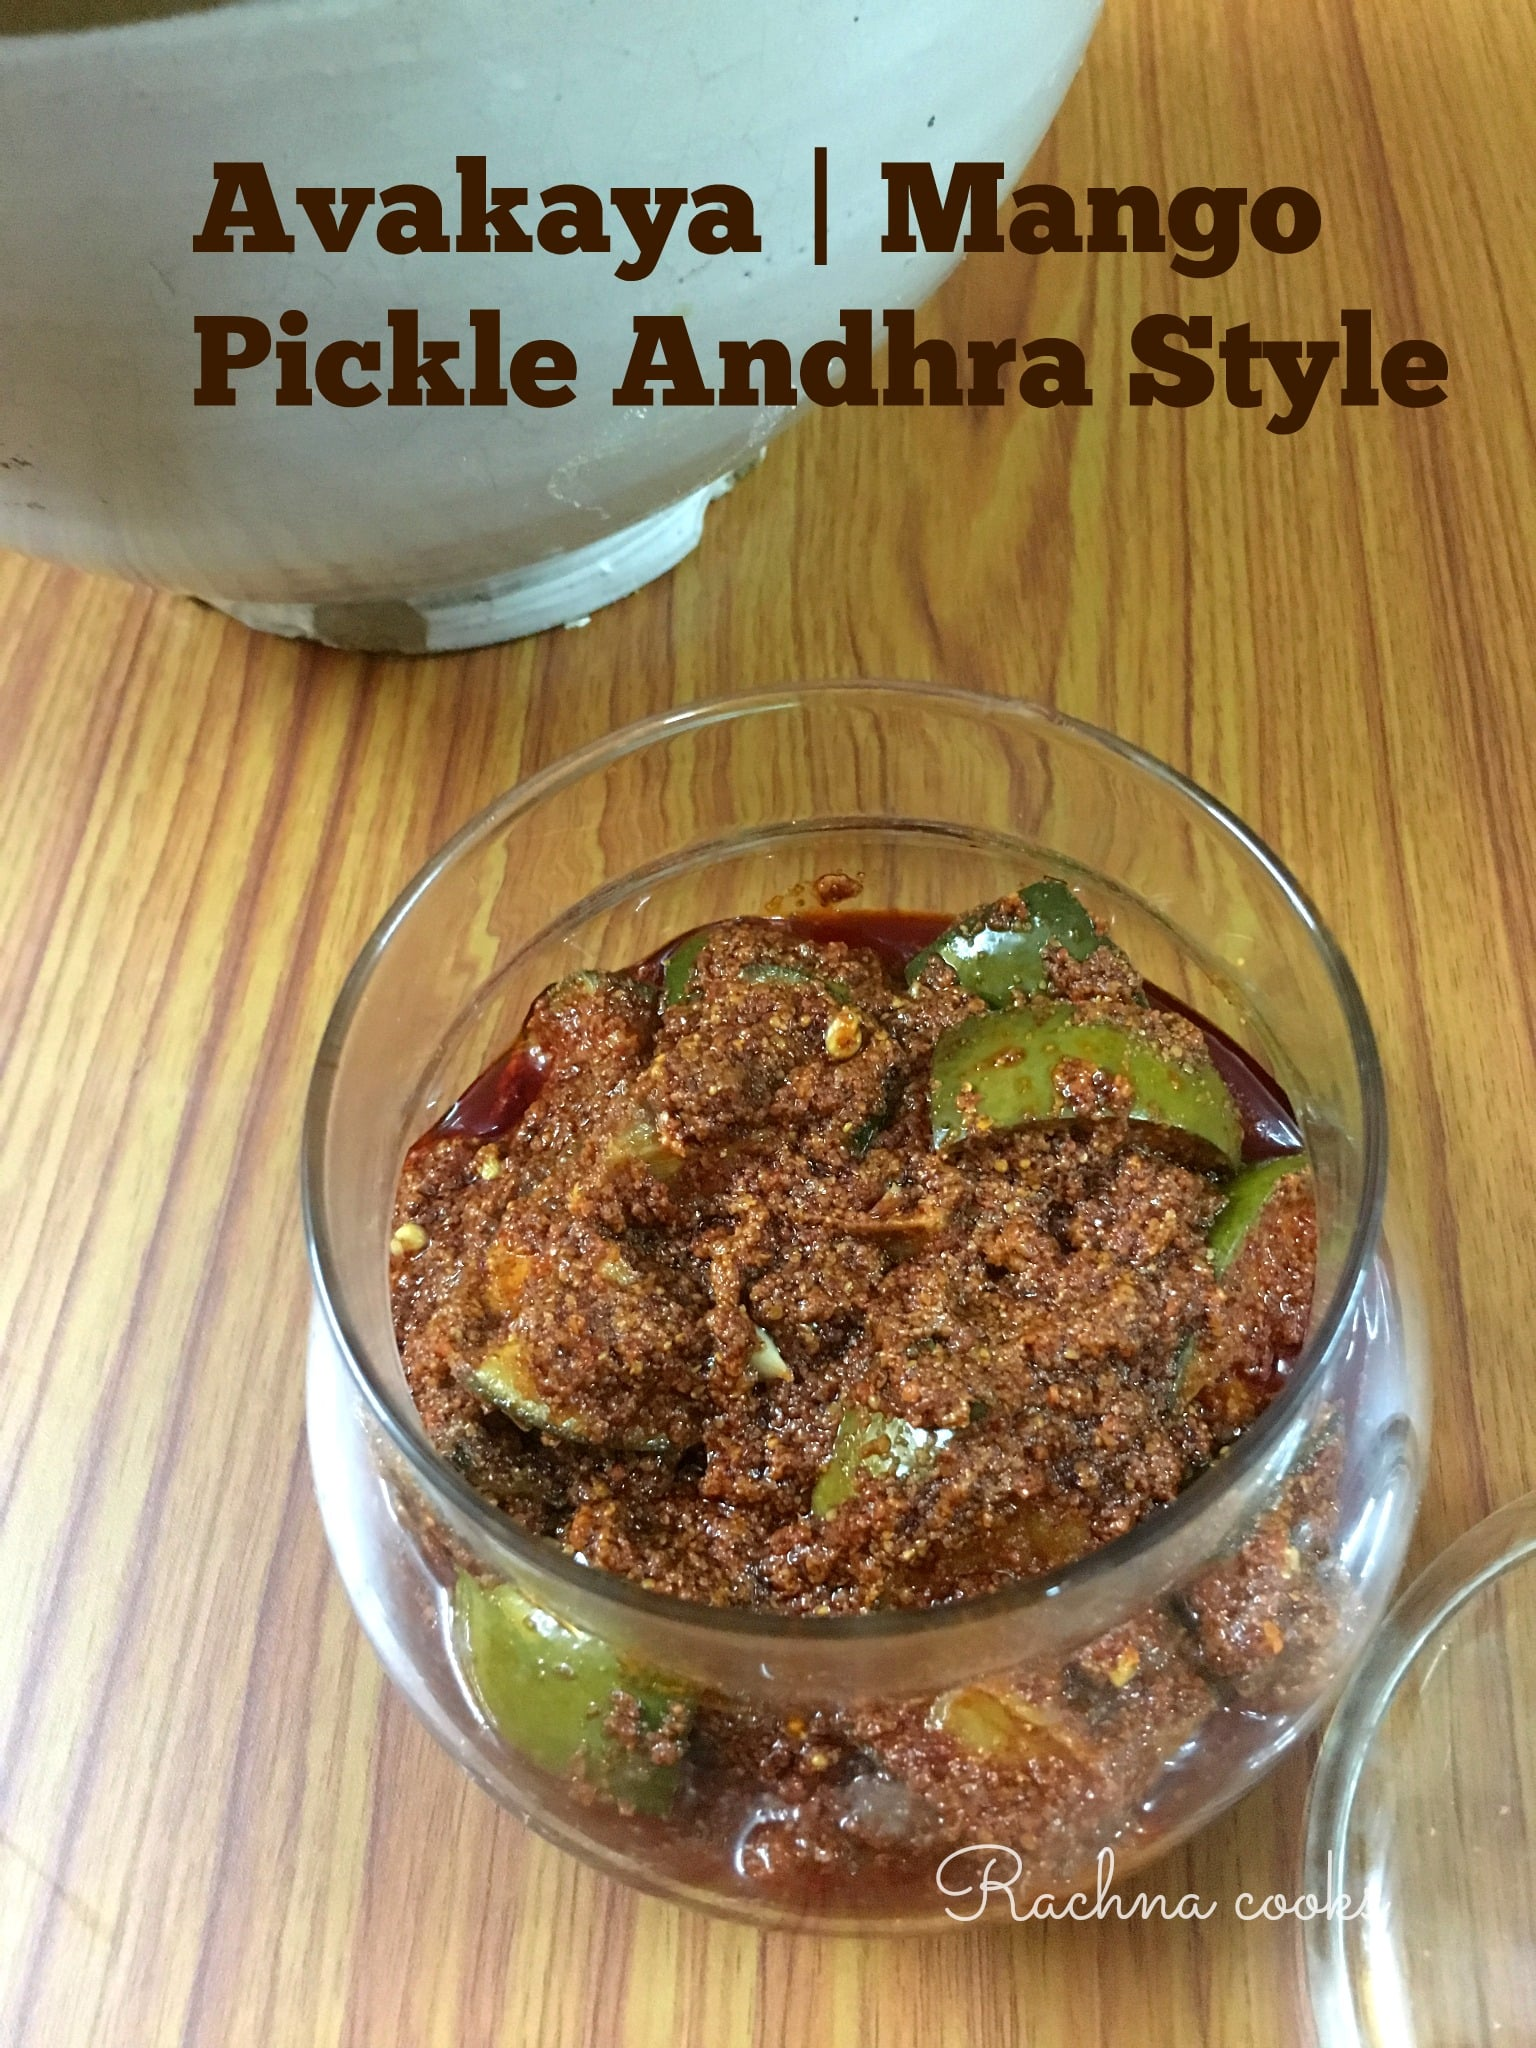 Mango Pickle Recipe Andhra Style | Avakaya Recipe